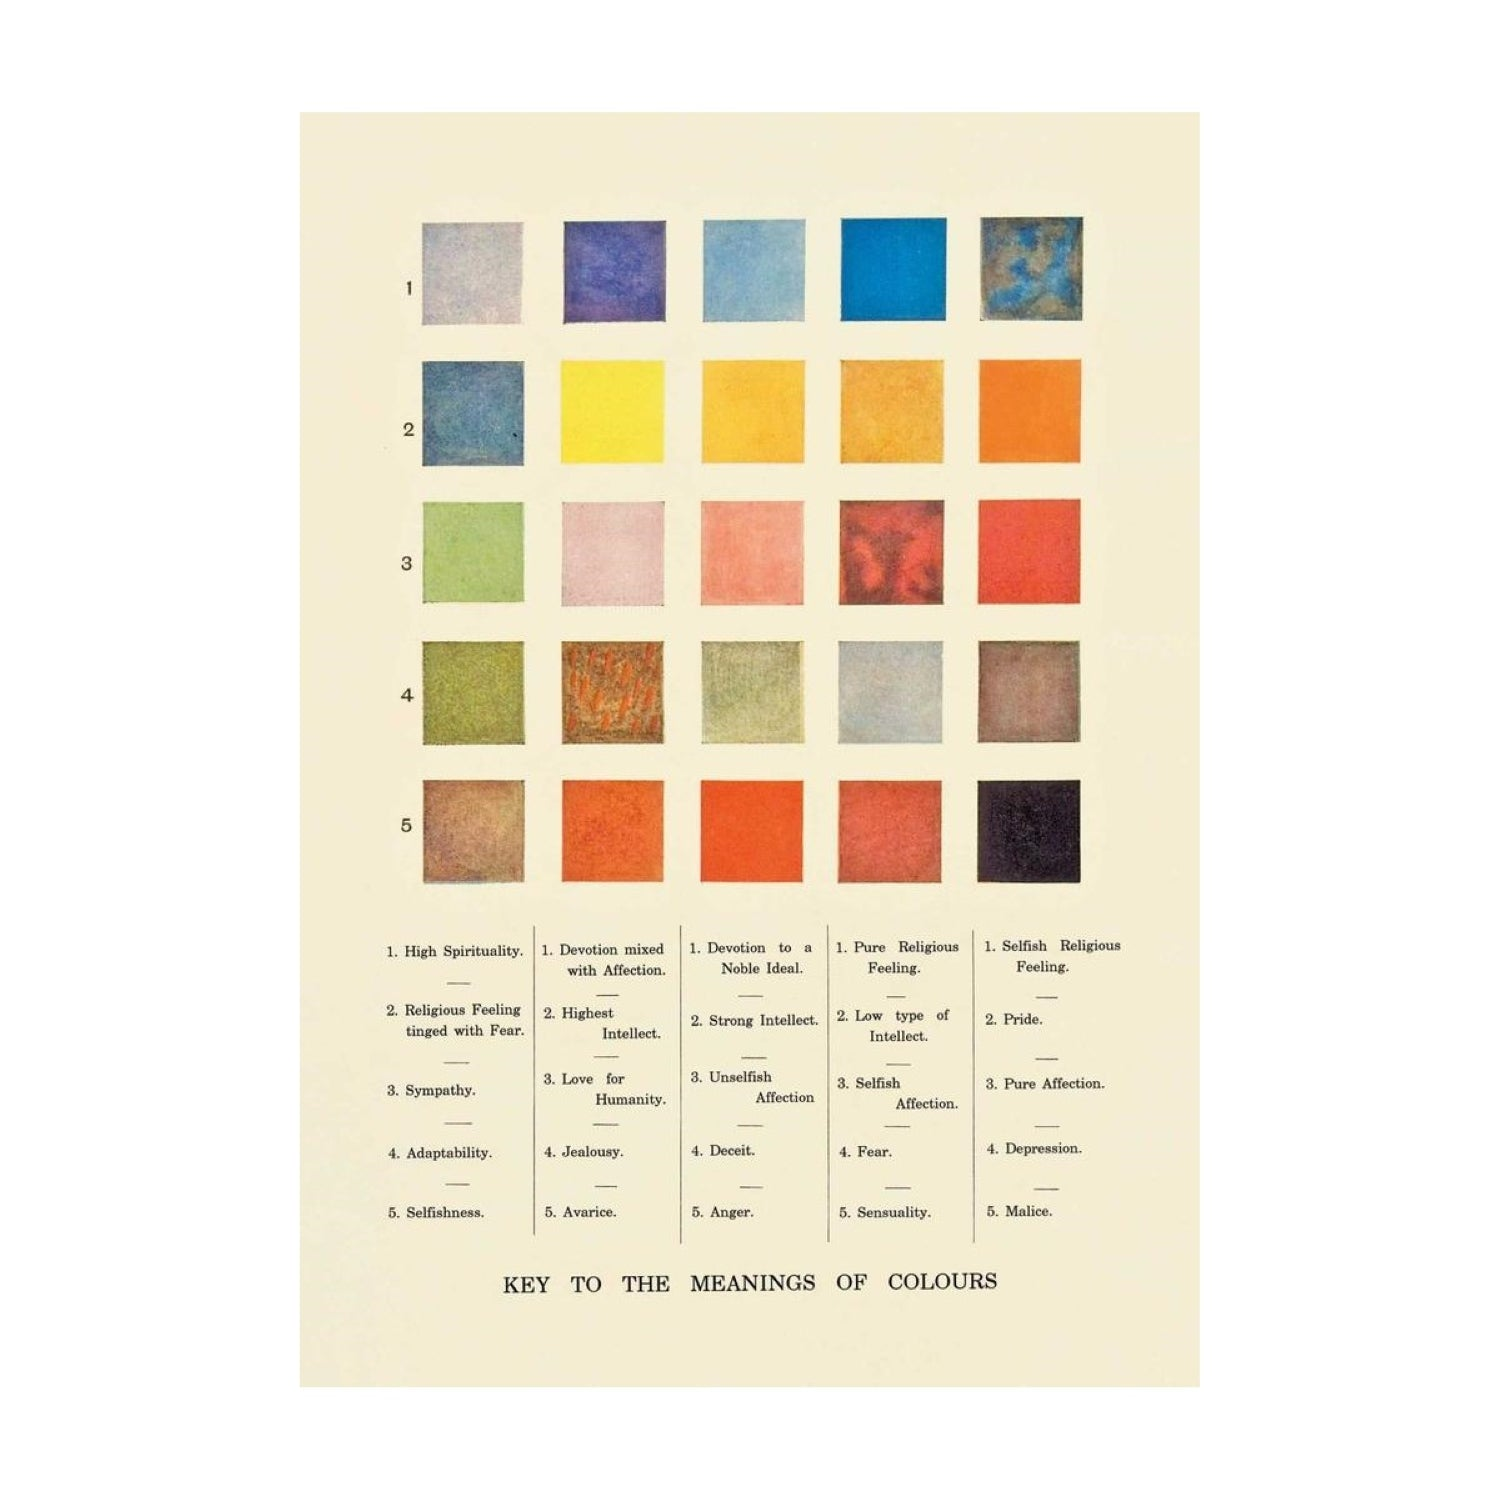 The Pattern Book Meanings of Colours Card